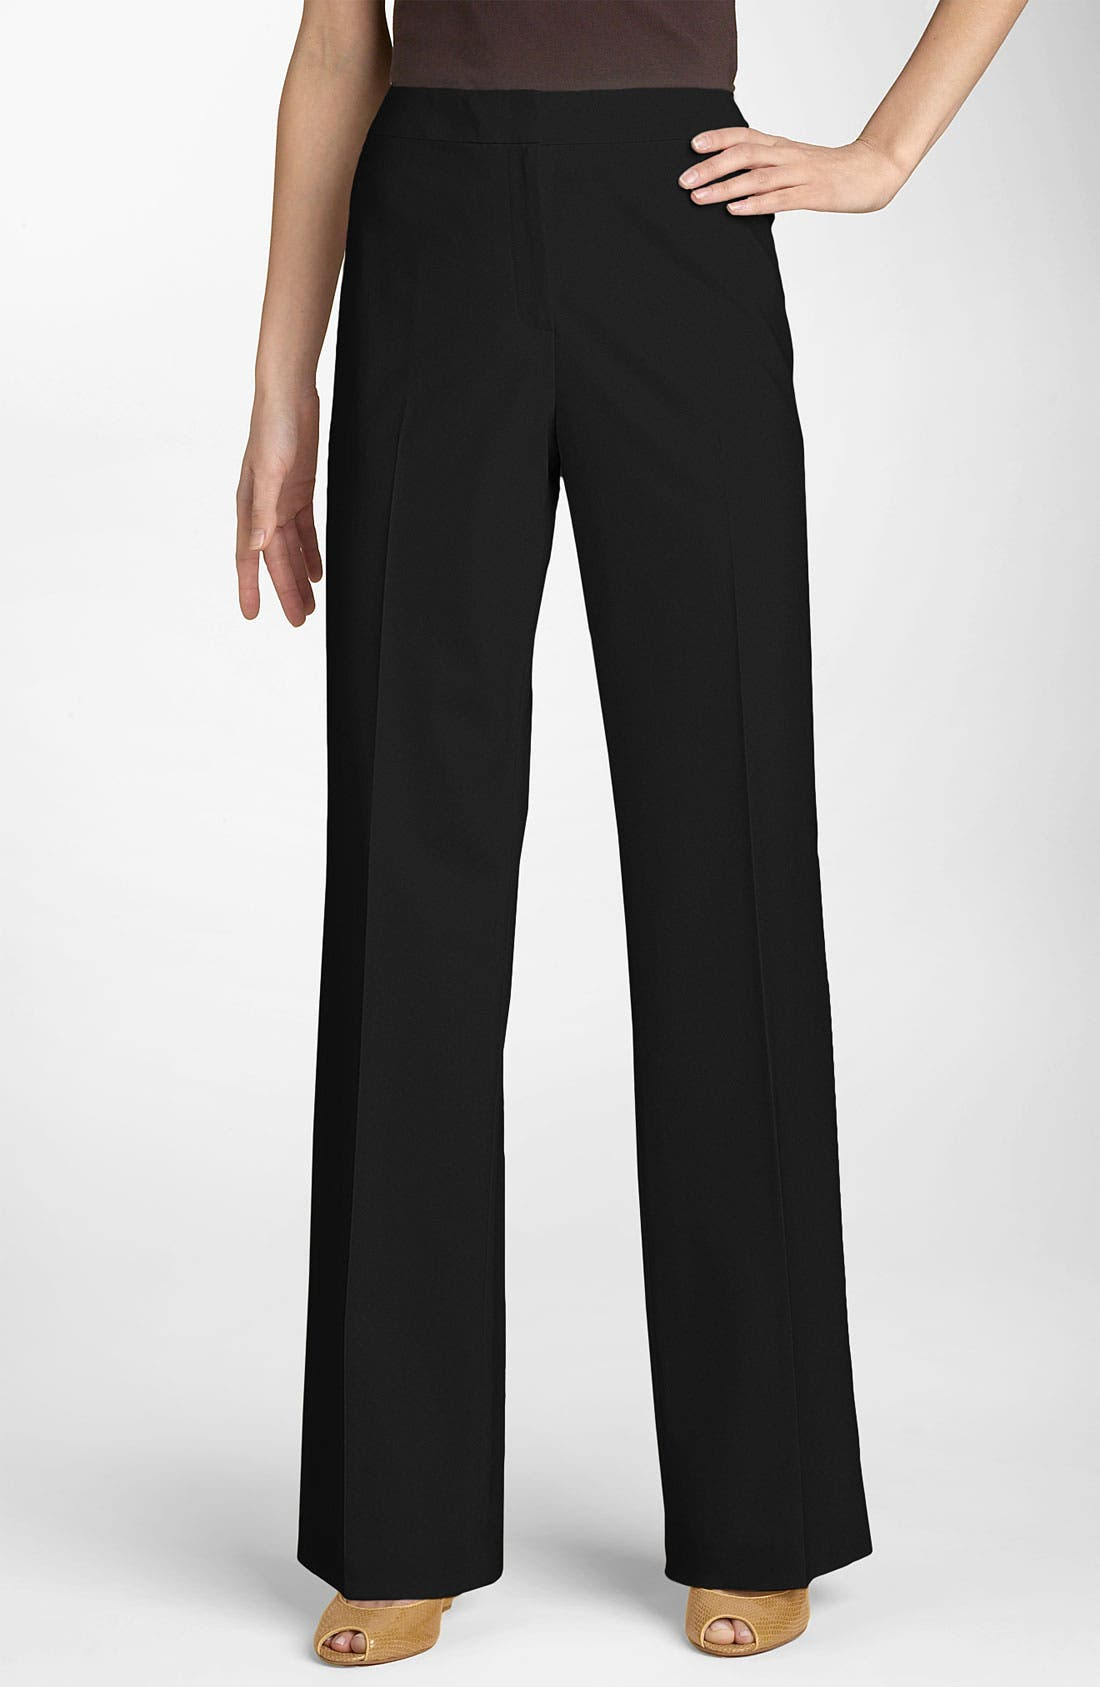 Alternate Image 1 Selected - Lafayette 148 New York 'Menswear' Trousers (Regular & Petite)